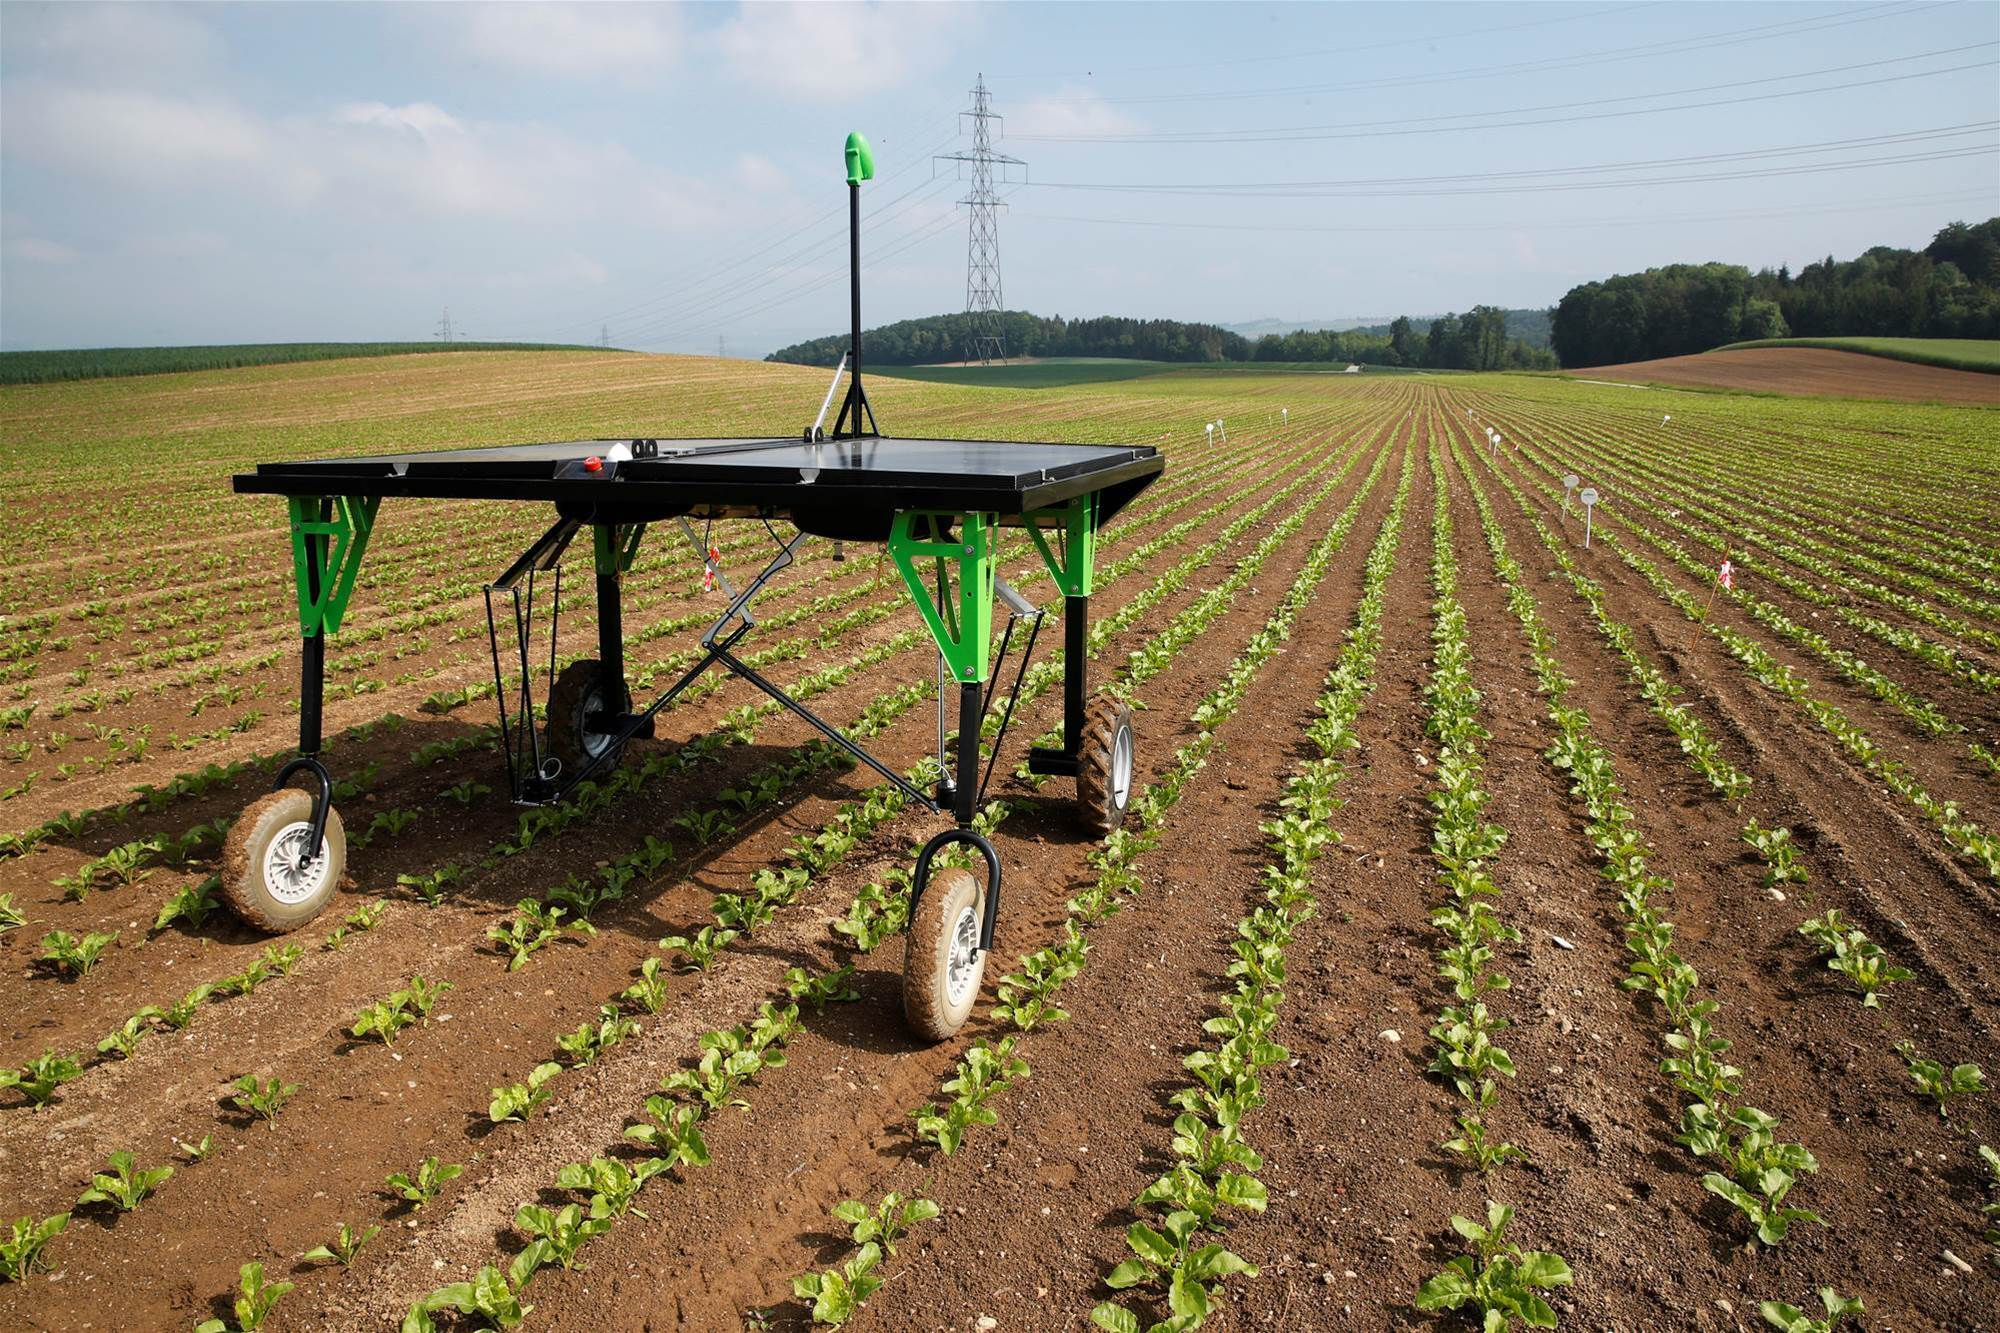 Robotic weed killers challenge fertiliser industry